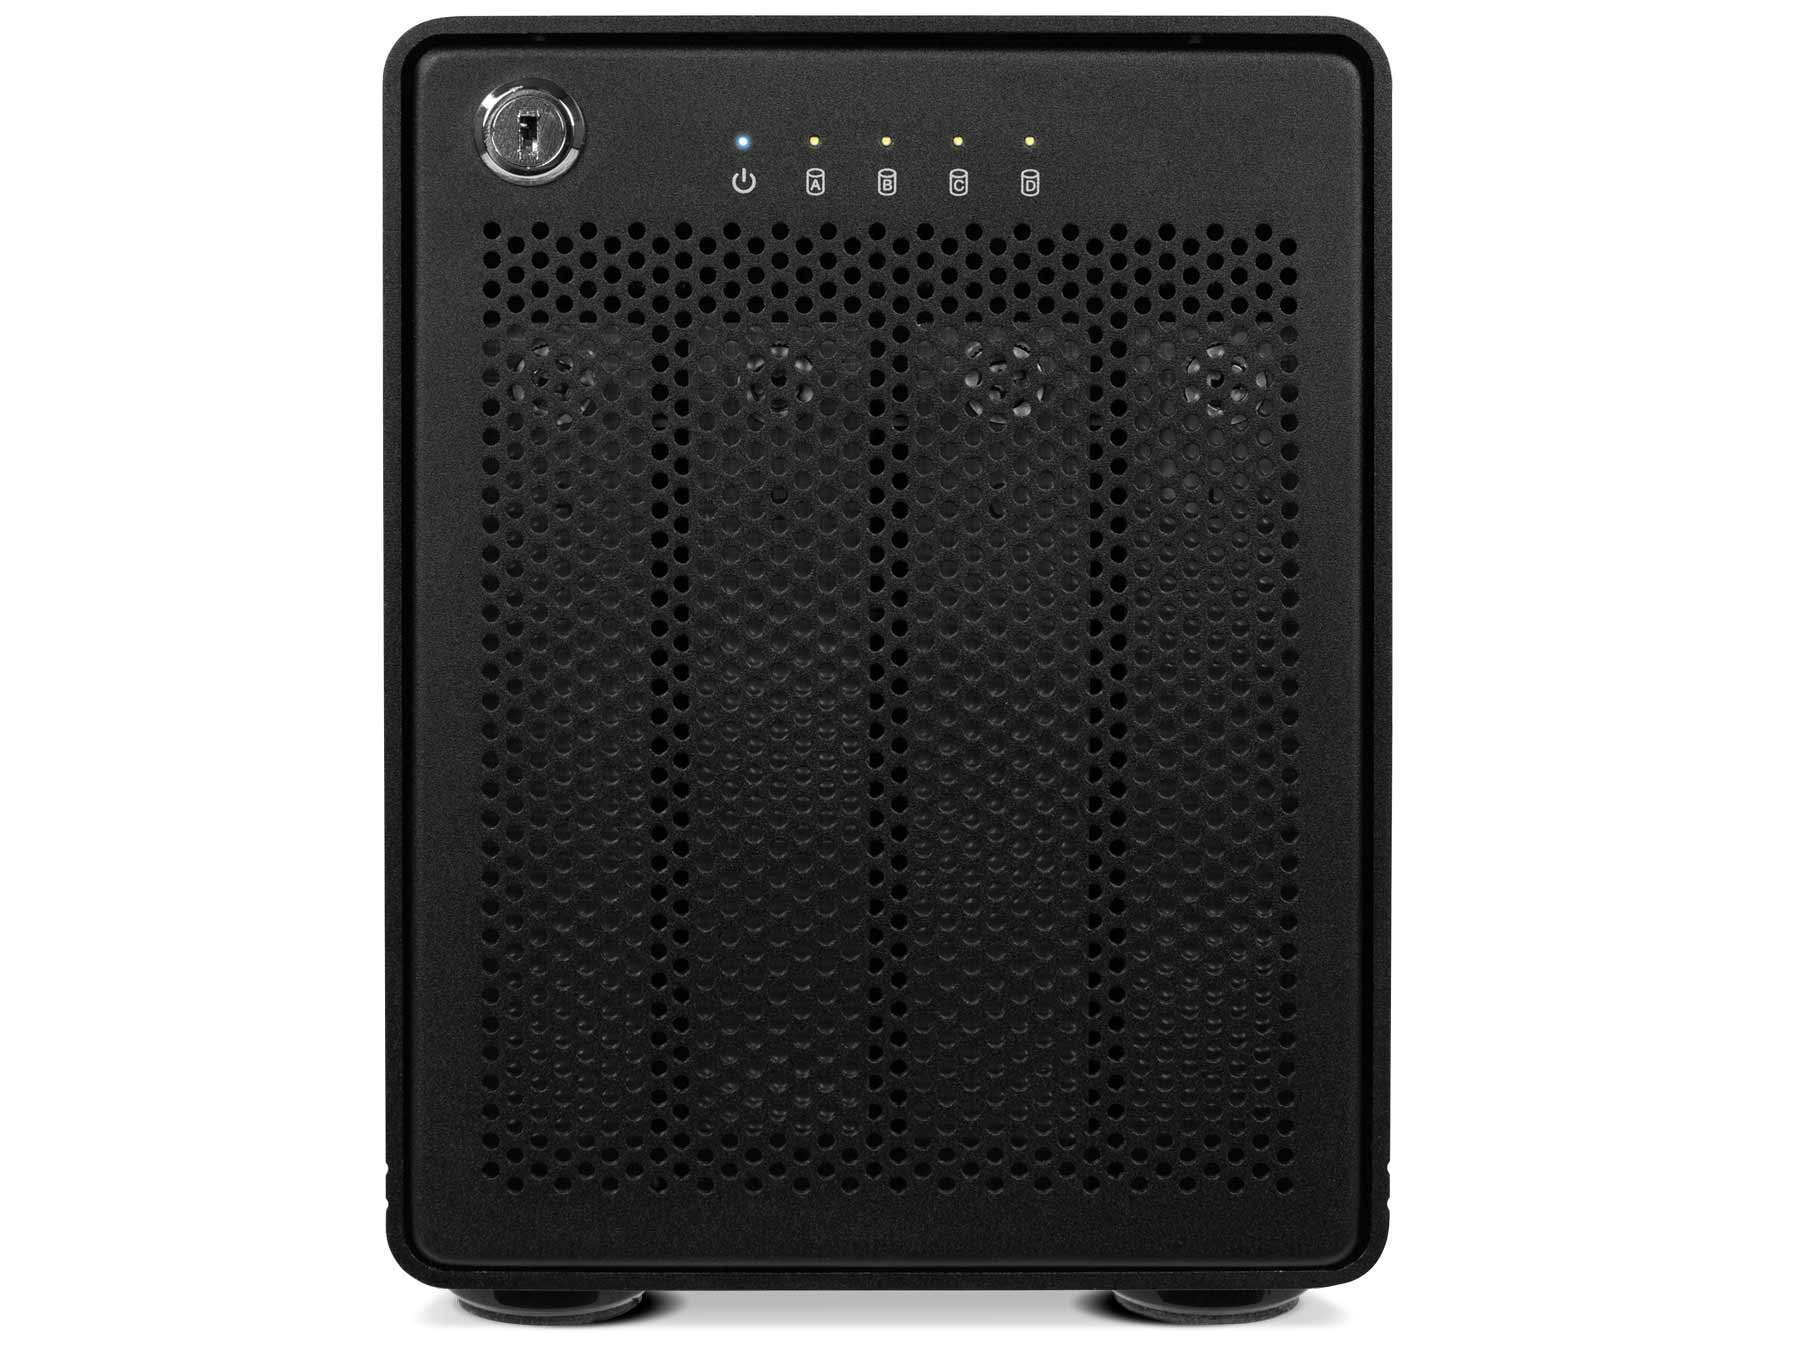 4.0TB (4x 1TB) OWC ThunderBay 4, four-drive HDD with dual Thunderbolt 20Gb/s ports, OWCTB2IVT04.0S